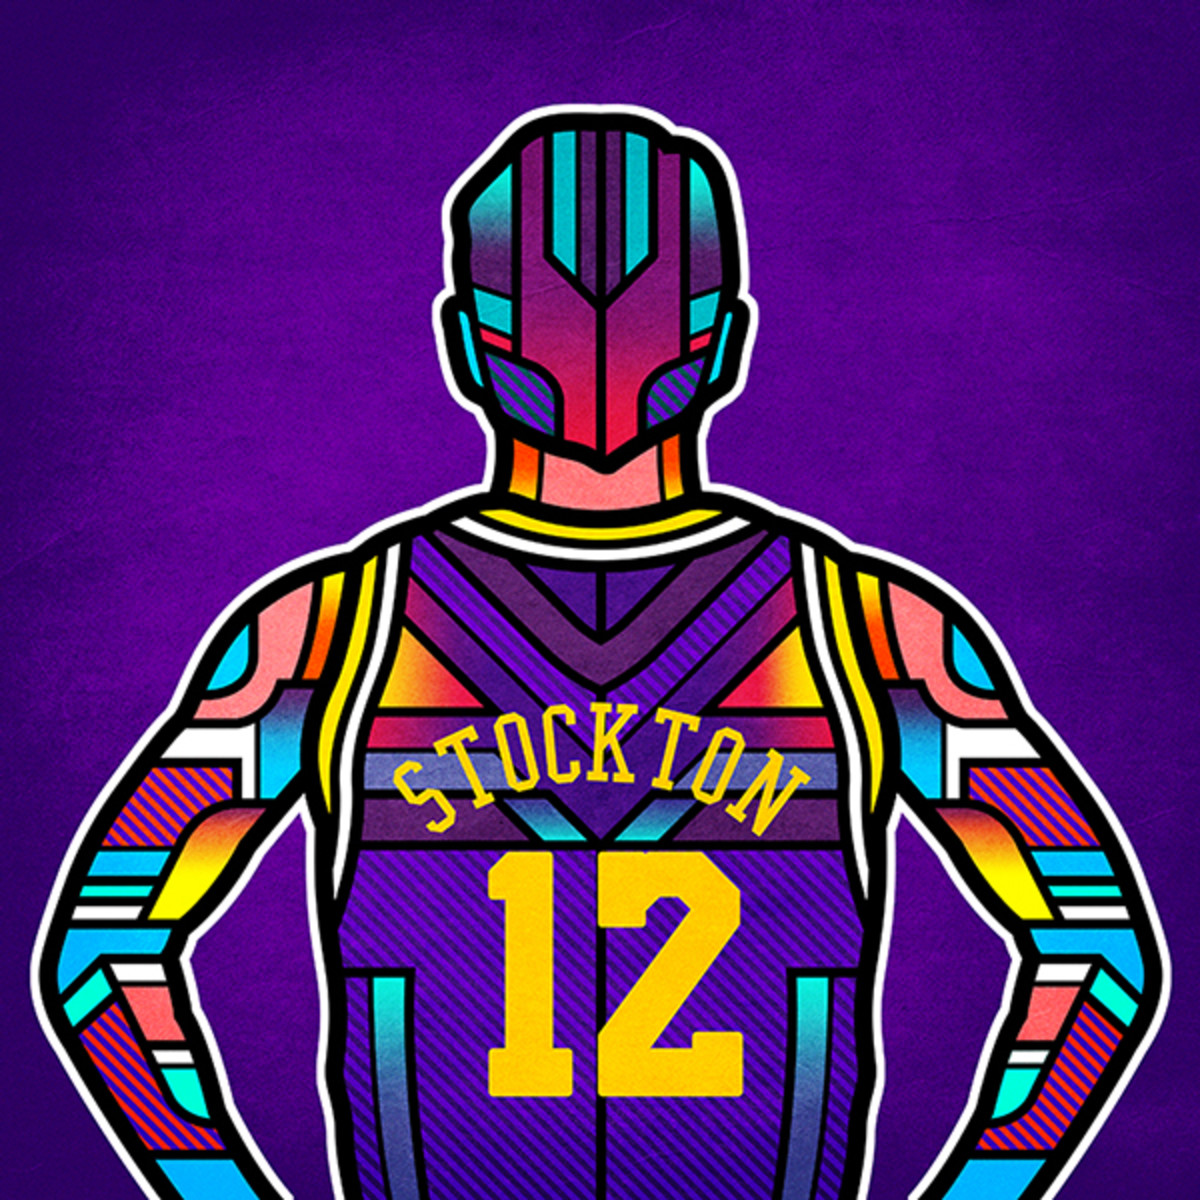 John-stockton-art.jpg